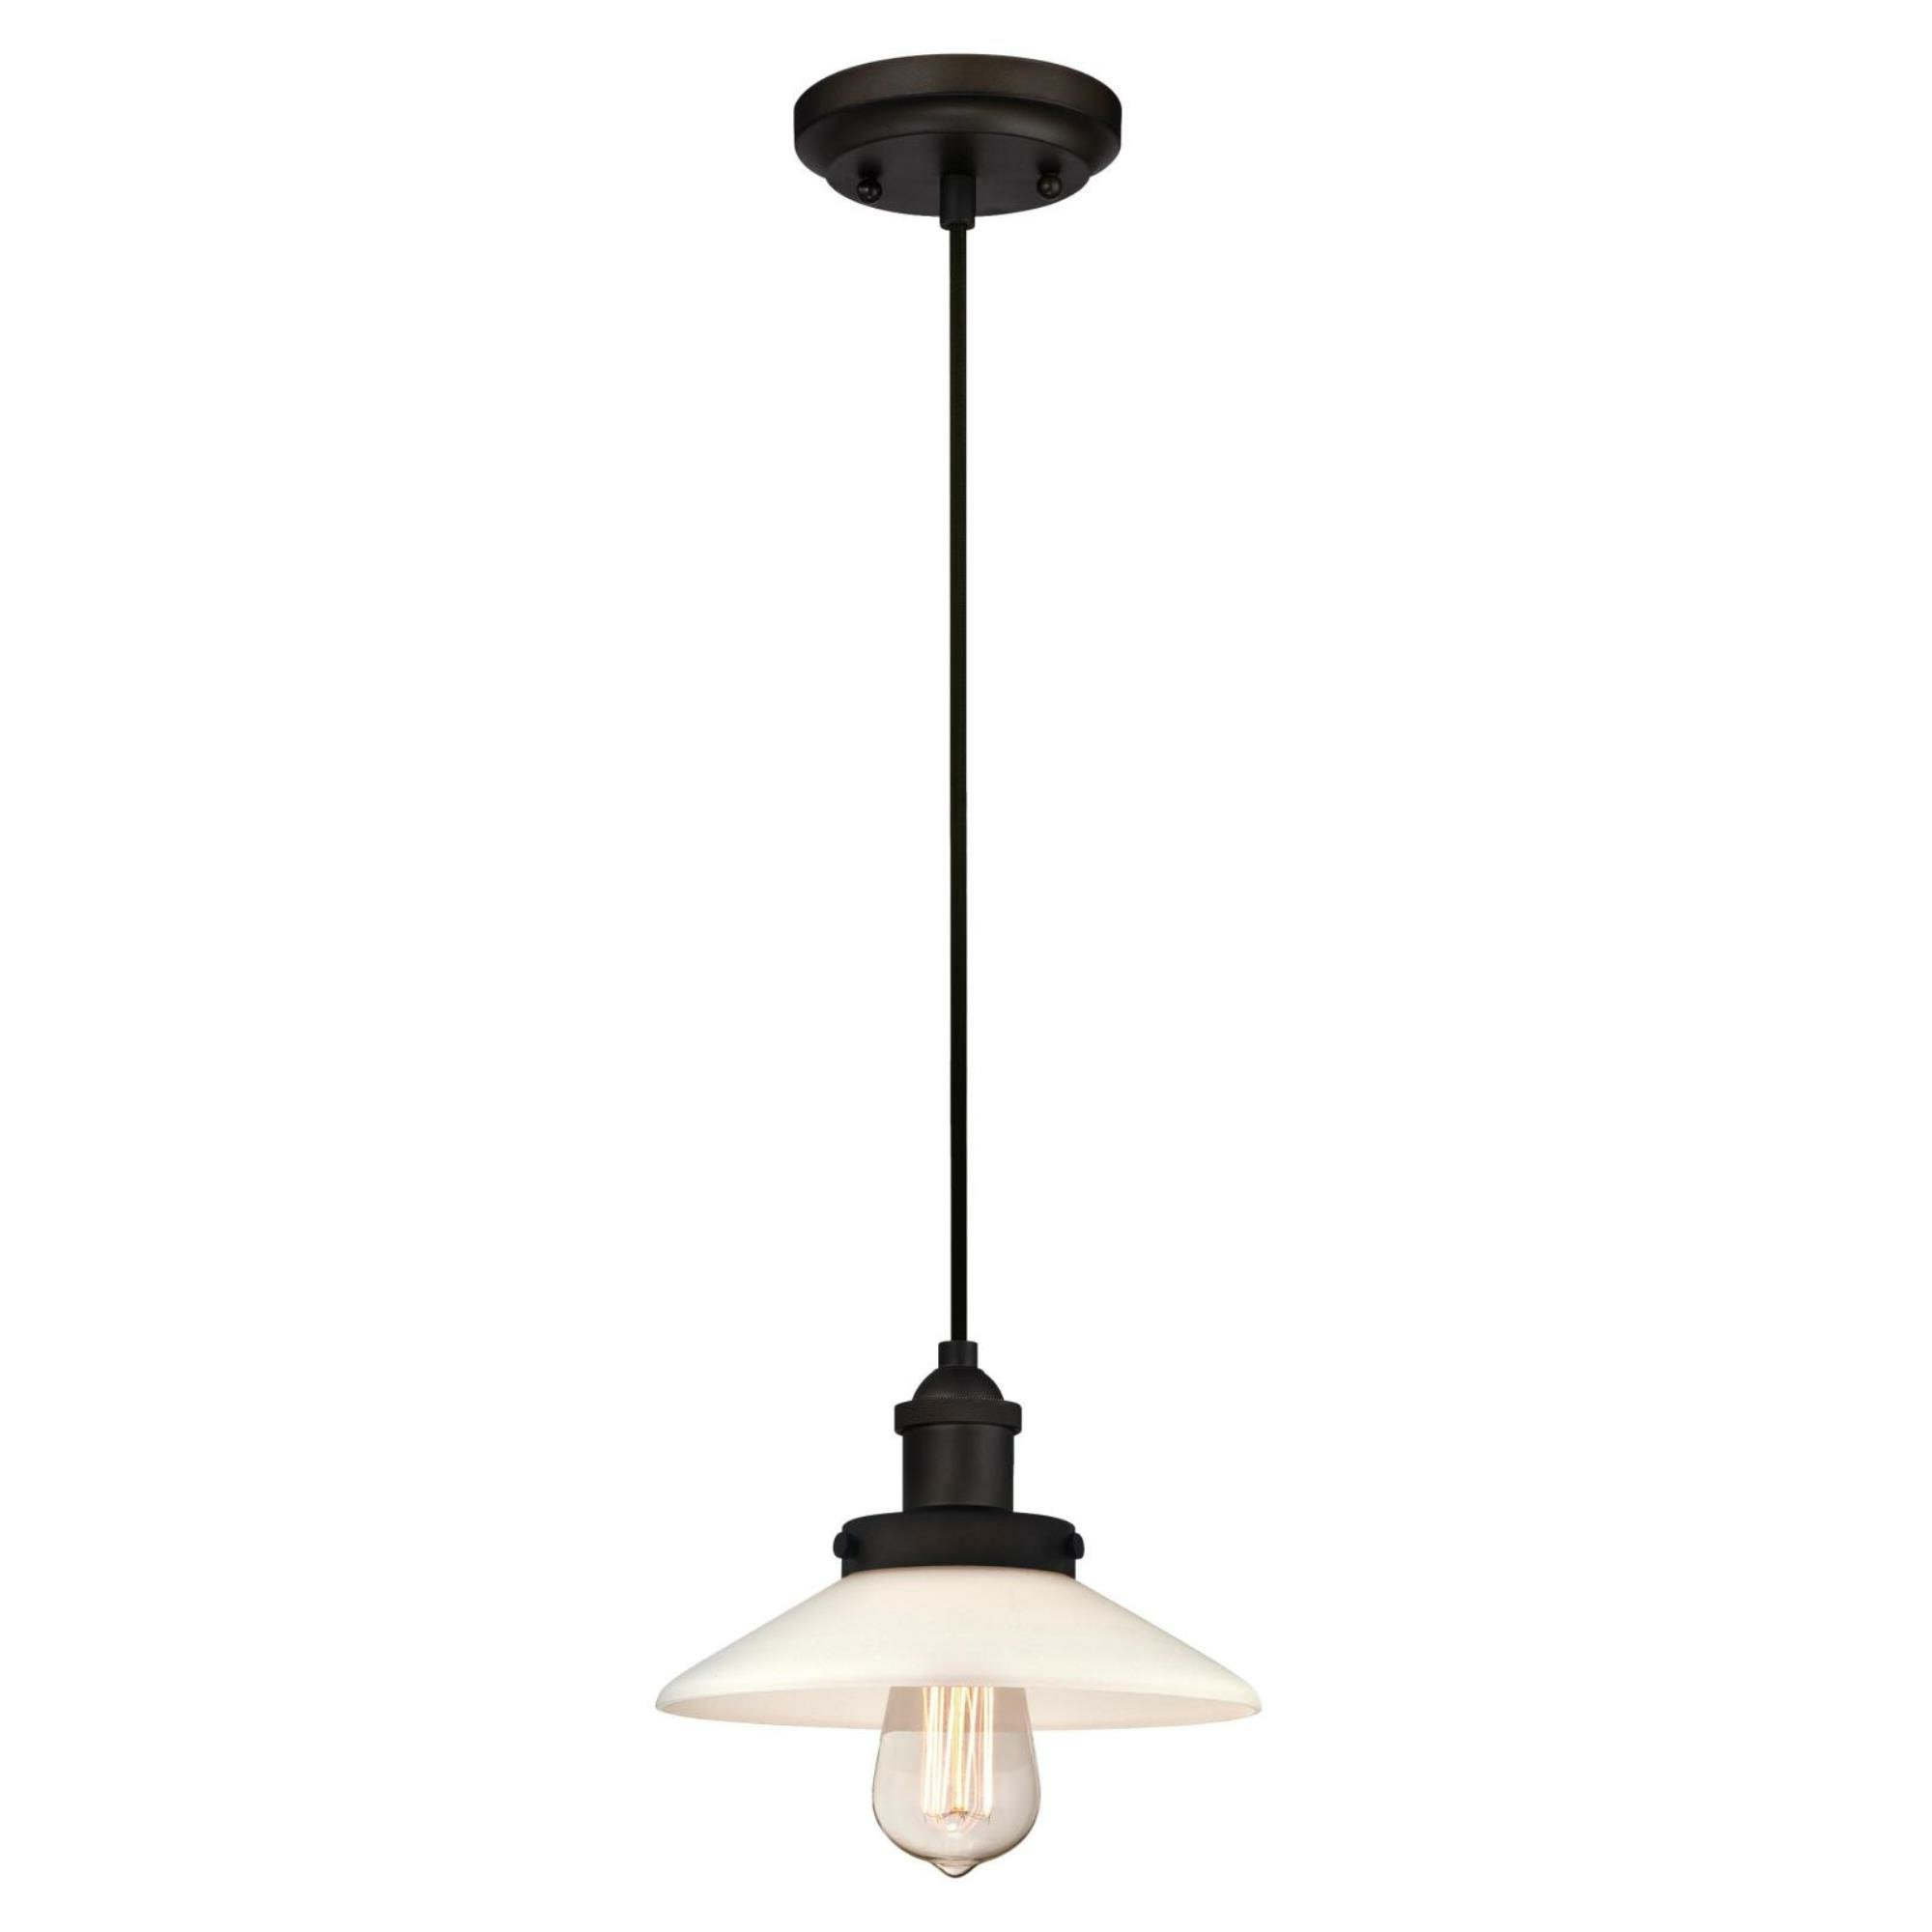 Darcella 1 Light Single Cone Pendant In Well Known Abordale 1 Light Single Dome Pendants (View 12 of 25)